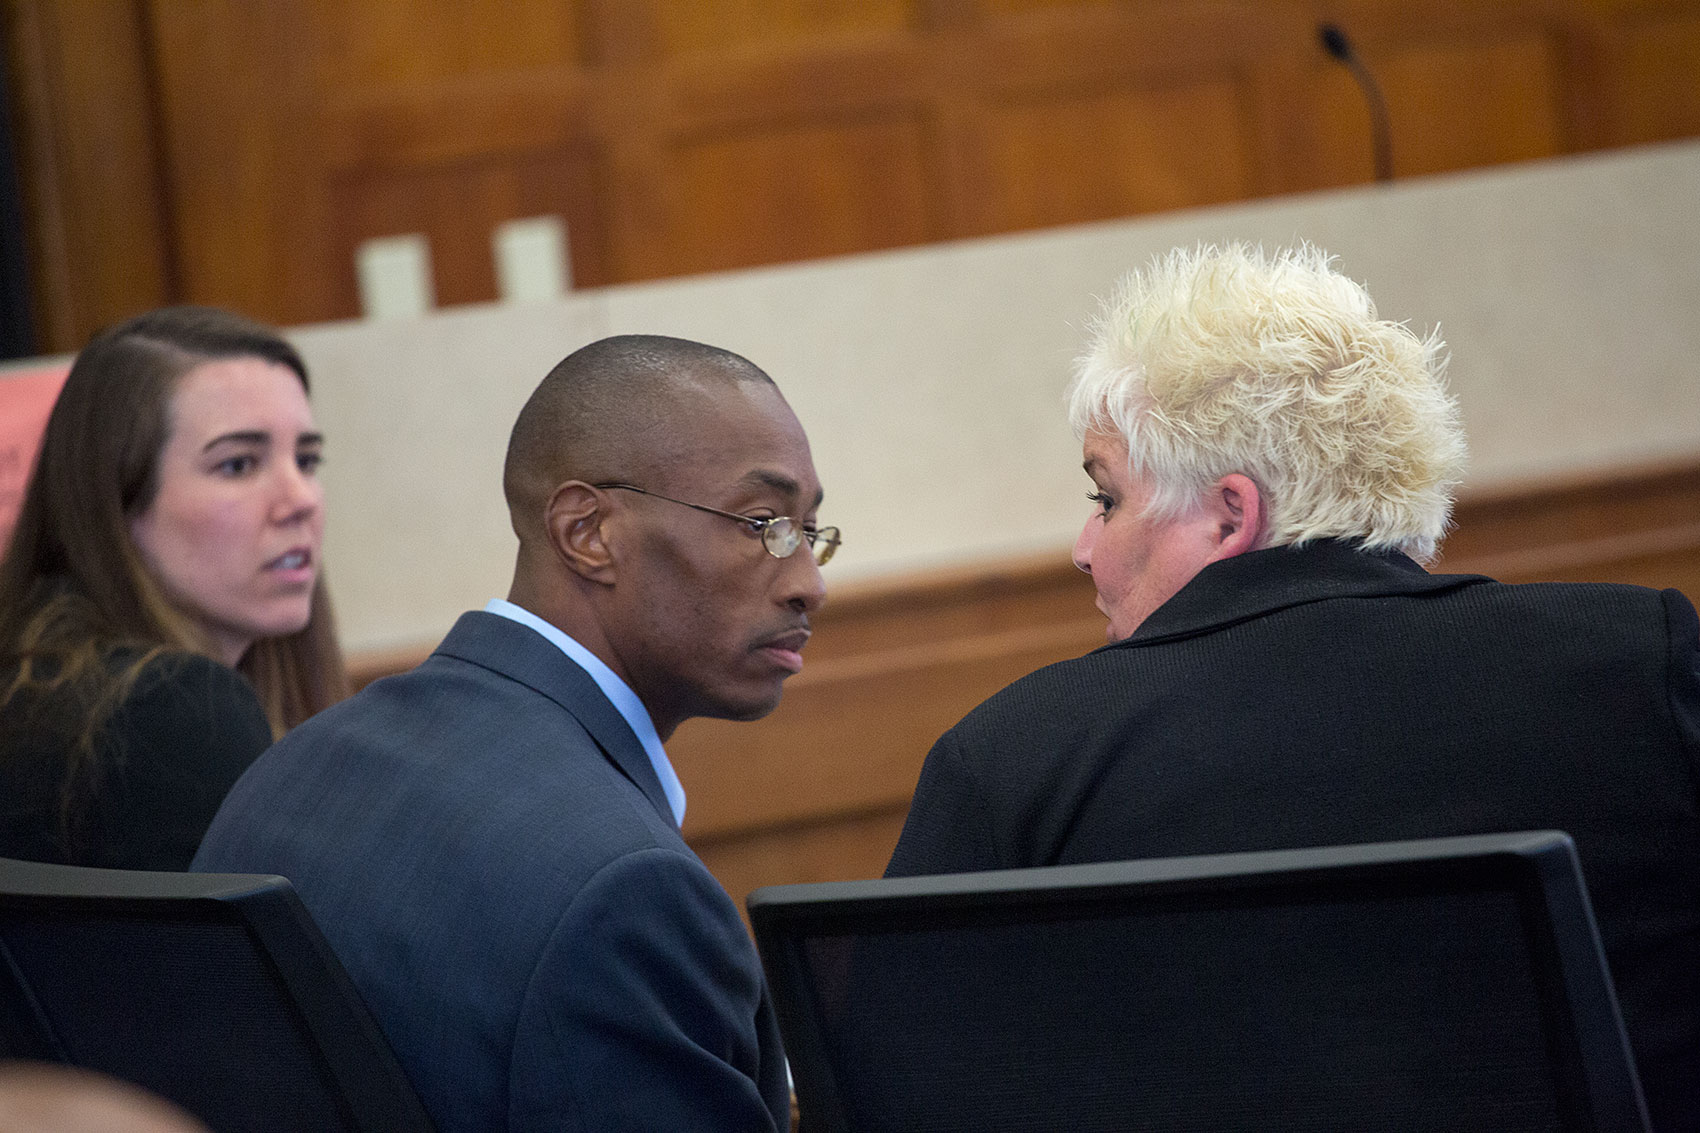 Sean Ellis confers with lead attorney Rosemary Scapicchio; attorney Jillise McDonough at left .